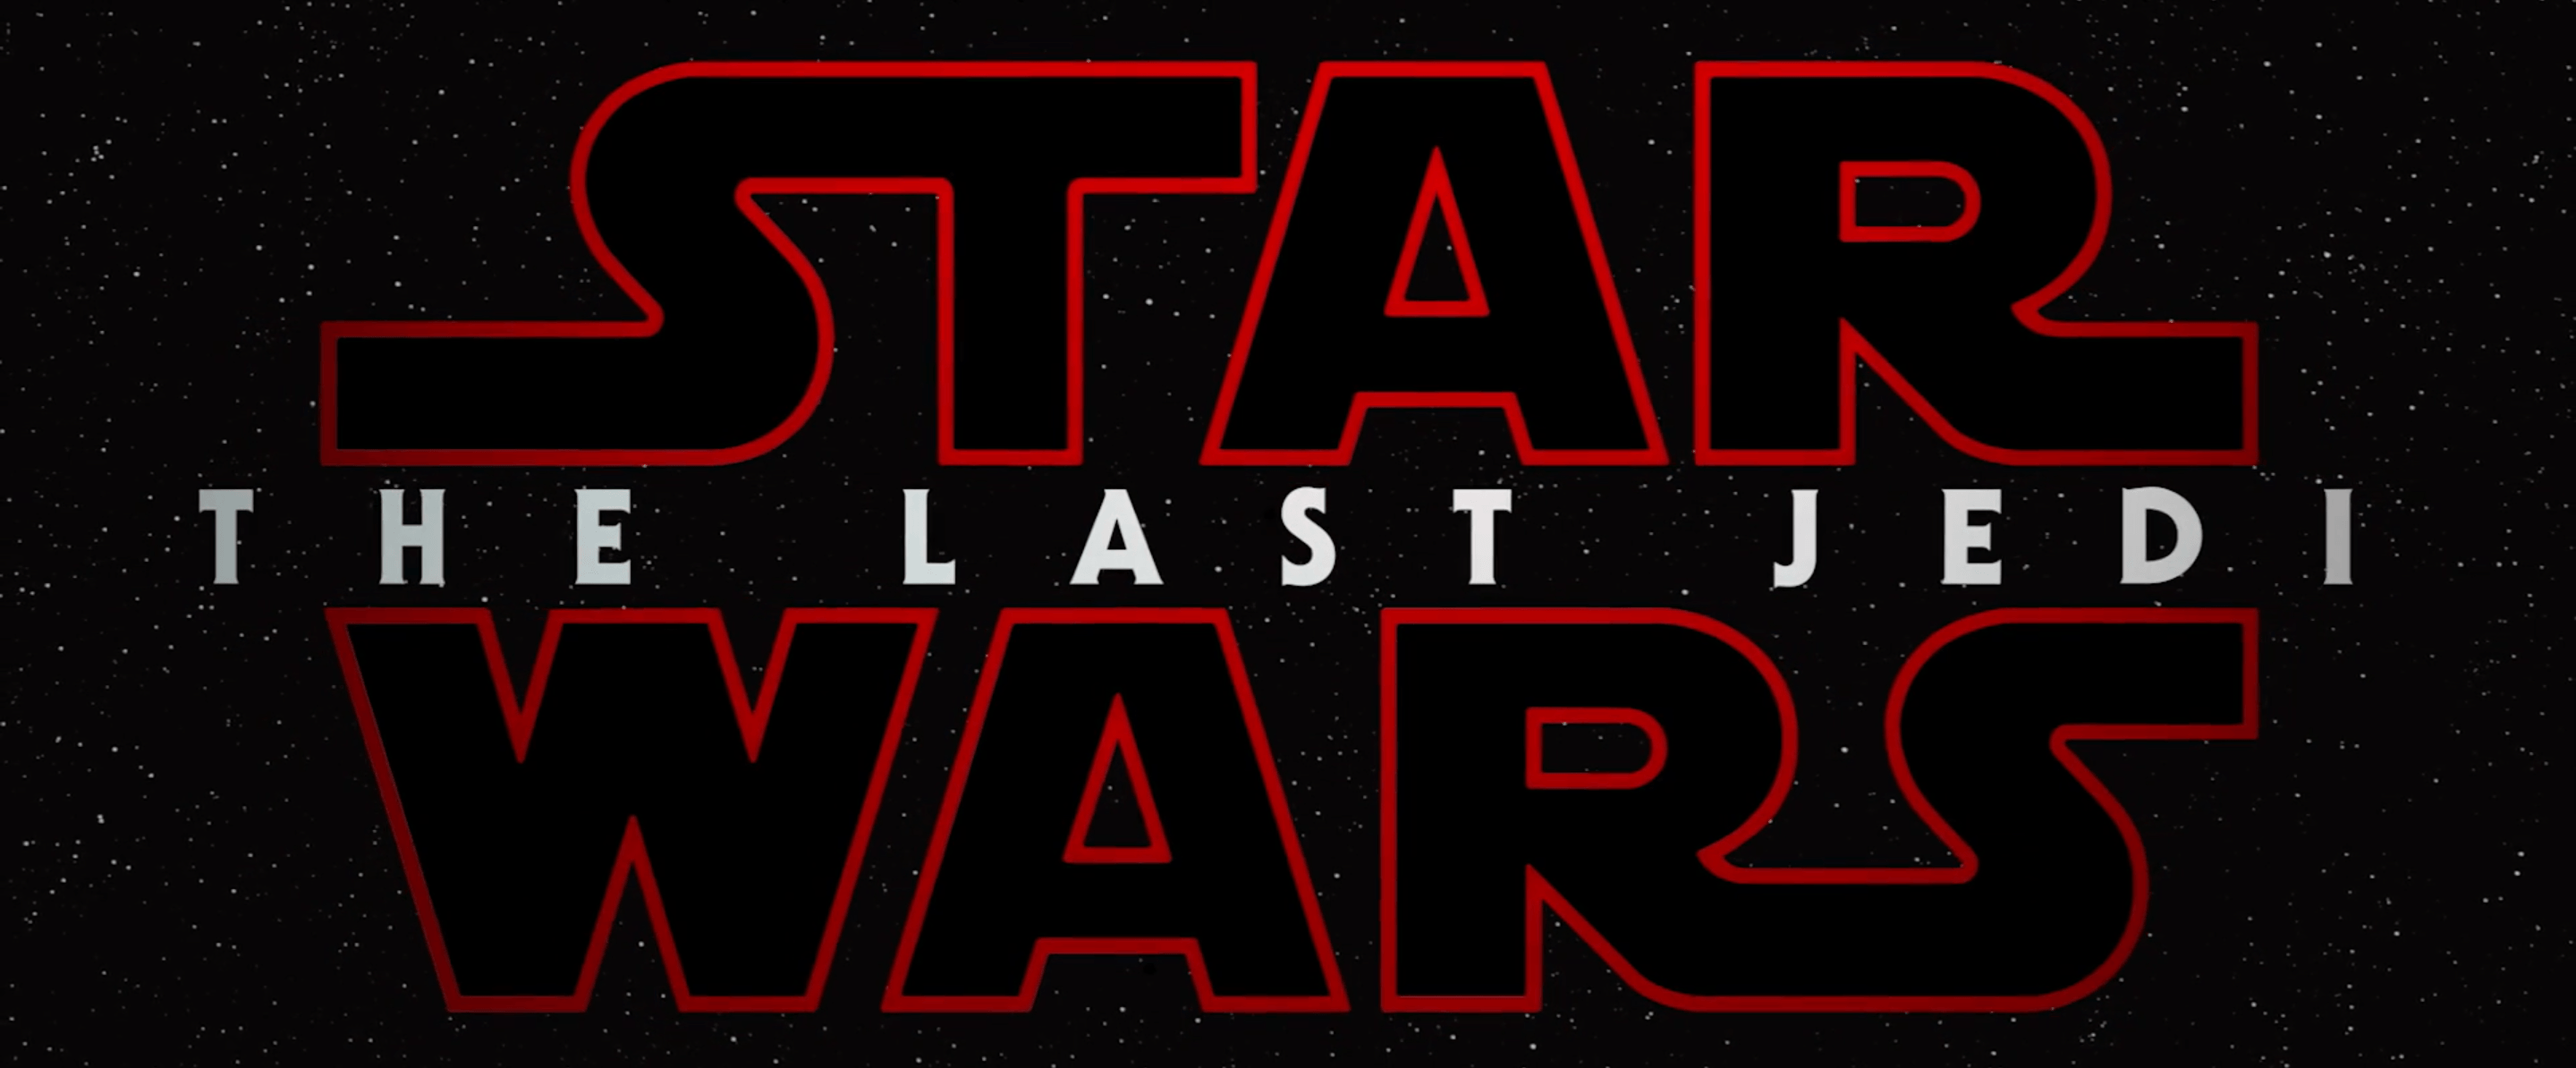 Star Wars: The Last Jedi Teaser at Star Wars Celebration Orlando 2017